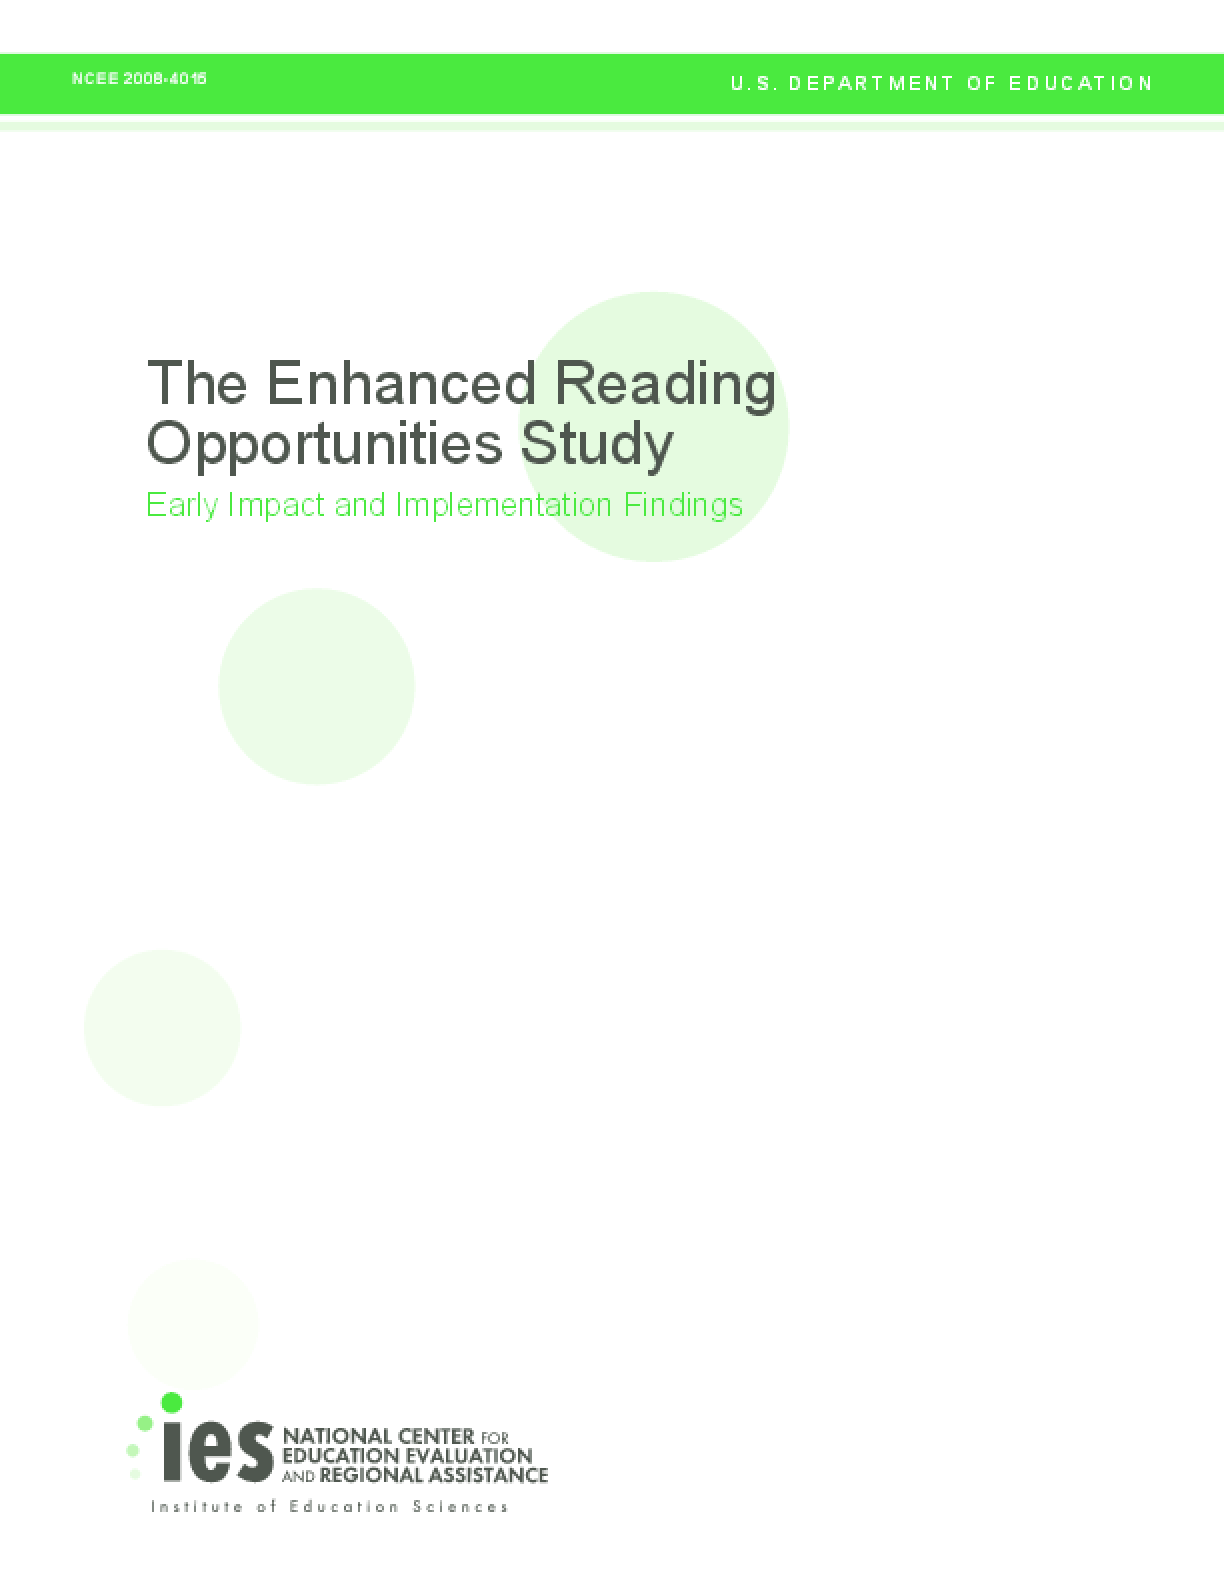 The Enhanced Reading Opportunities Study: Early Impact and Implementation Findings